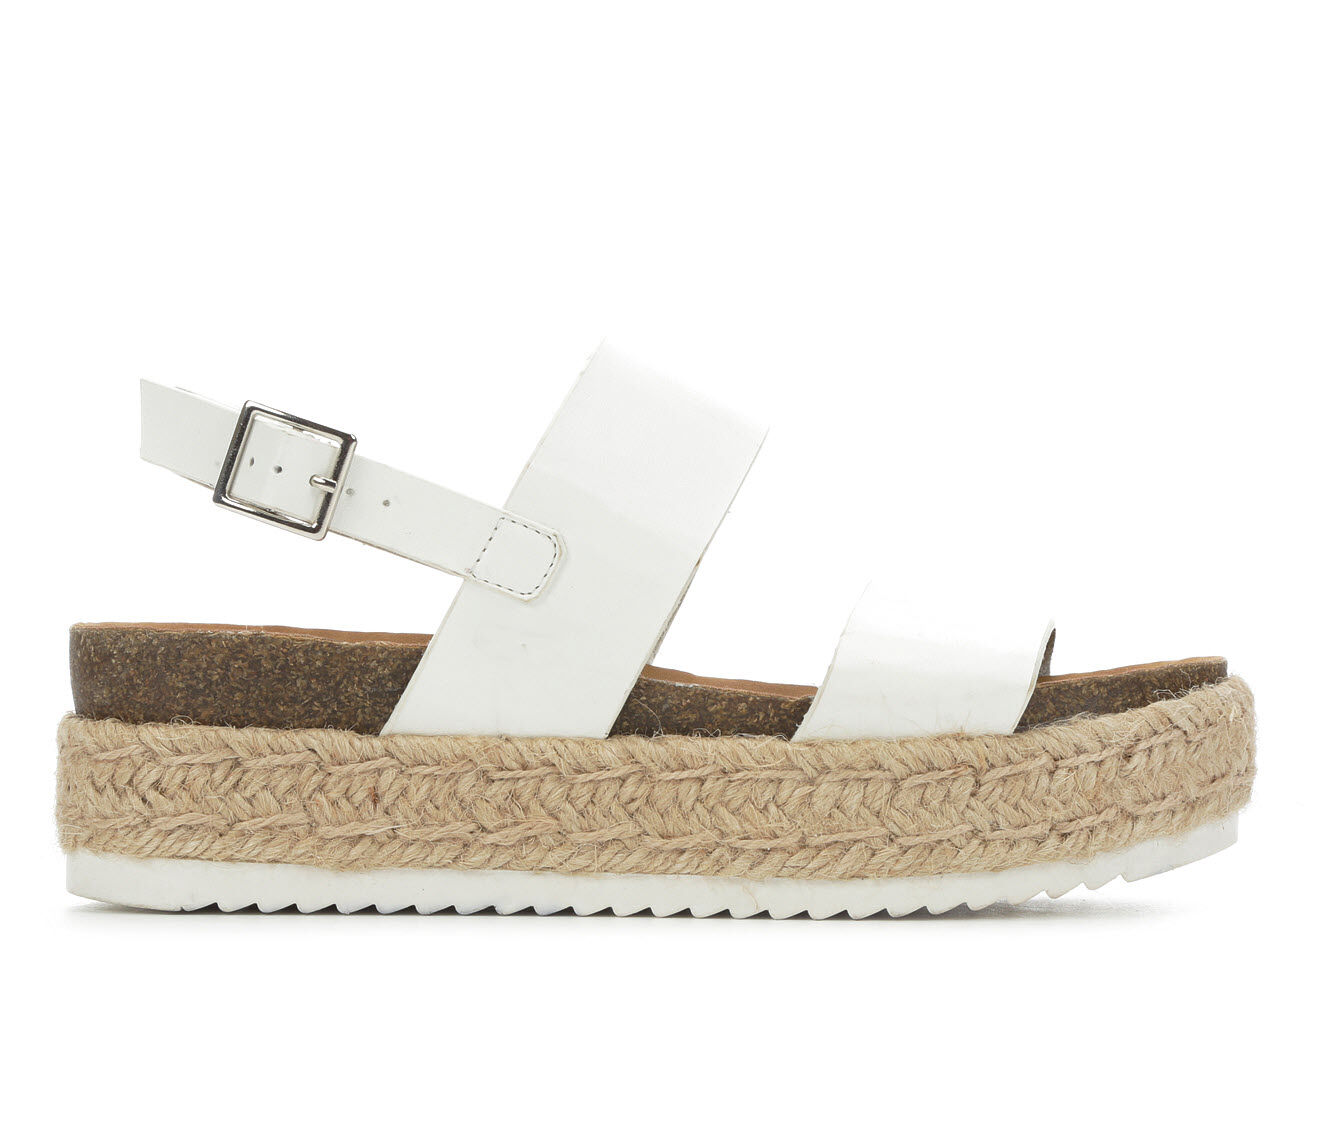 Best selling Women's Soda Kazoo Flatform Sandals White